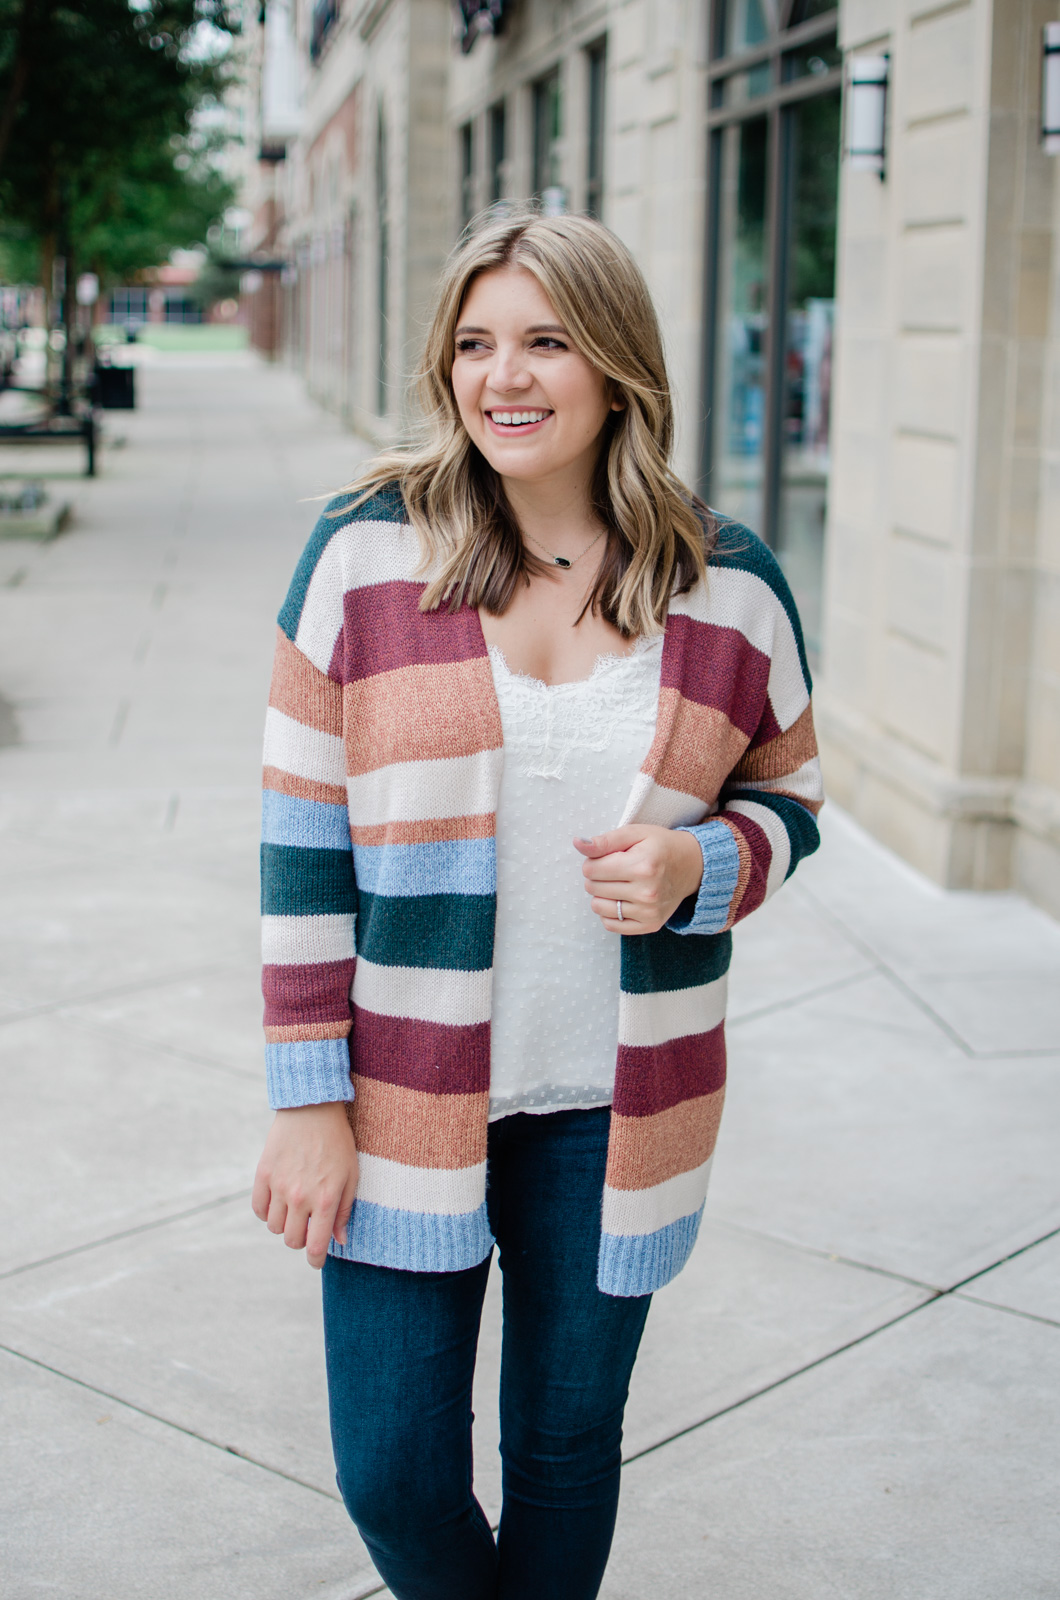 how to wear a striped cardi - striped cardigan outfit fall | bylaurenm.com